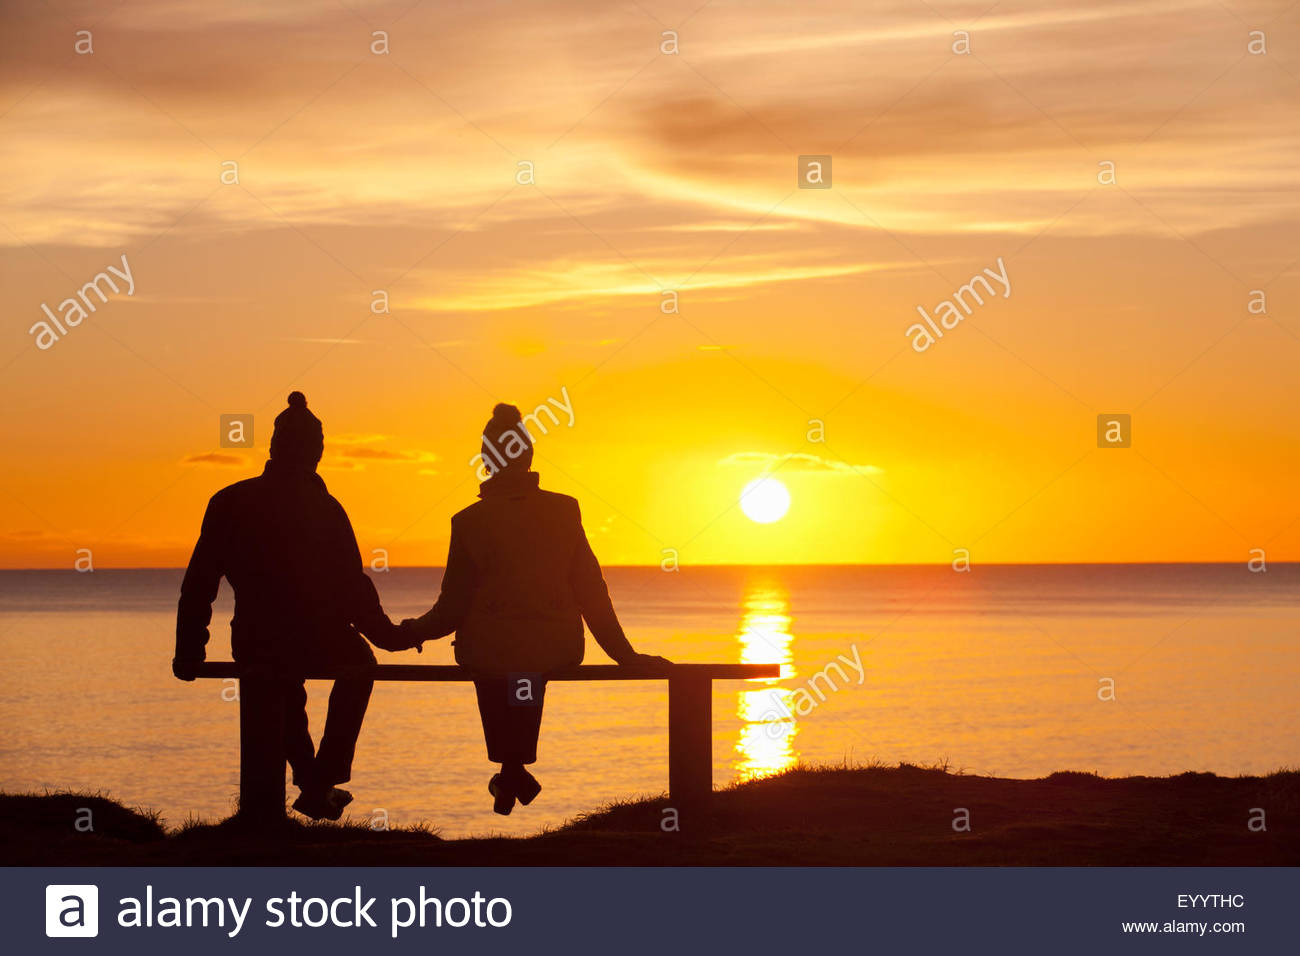 Silhouette of couple, sitting on bench, holding hands, against sunset over the ocean - Stock Image